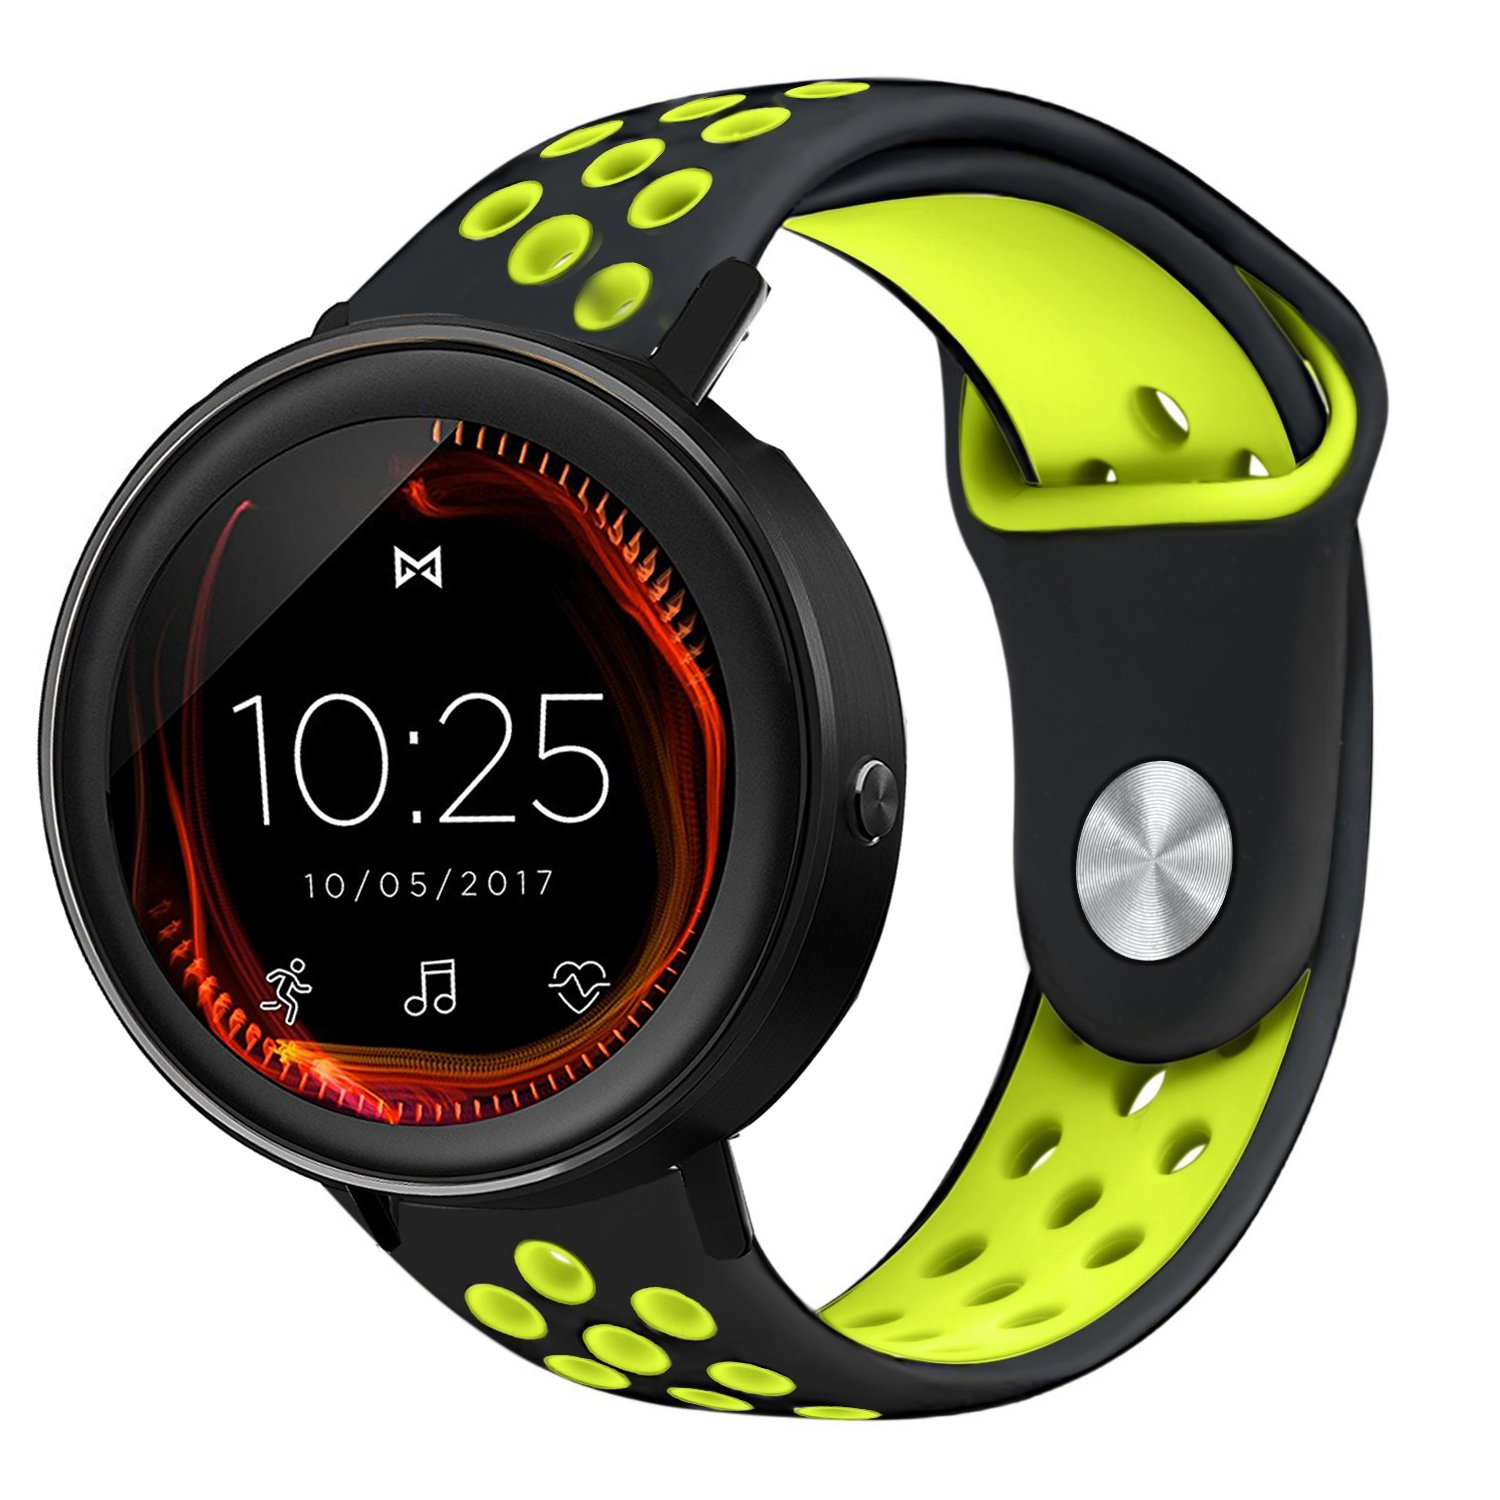 for Misfit Vapor Band, Lamshaw Silicone Soft Band with Ventilation Holes Replacement Straps for Misfit Vapor SMARTWATCH/Misfit Wearables Fitness ...